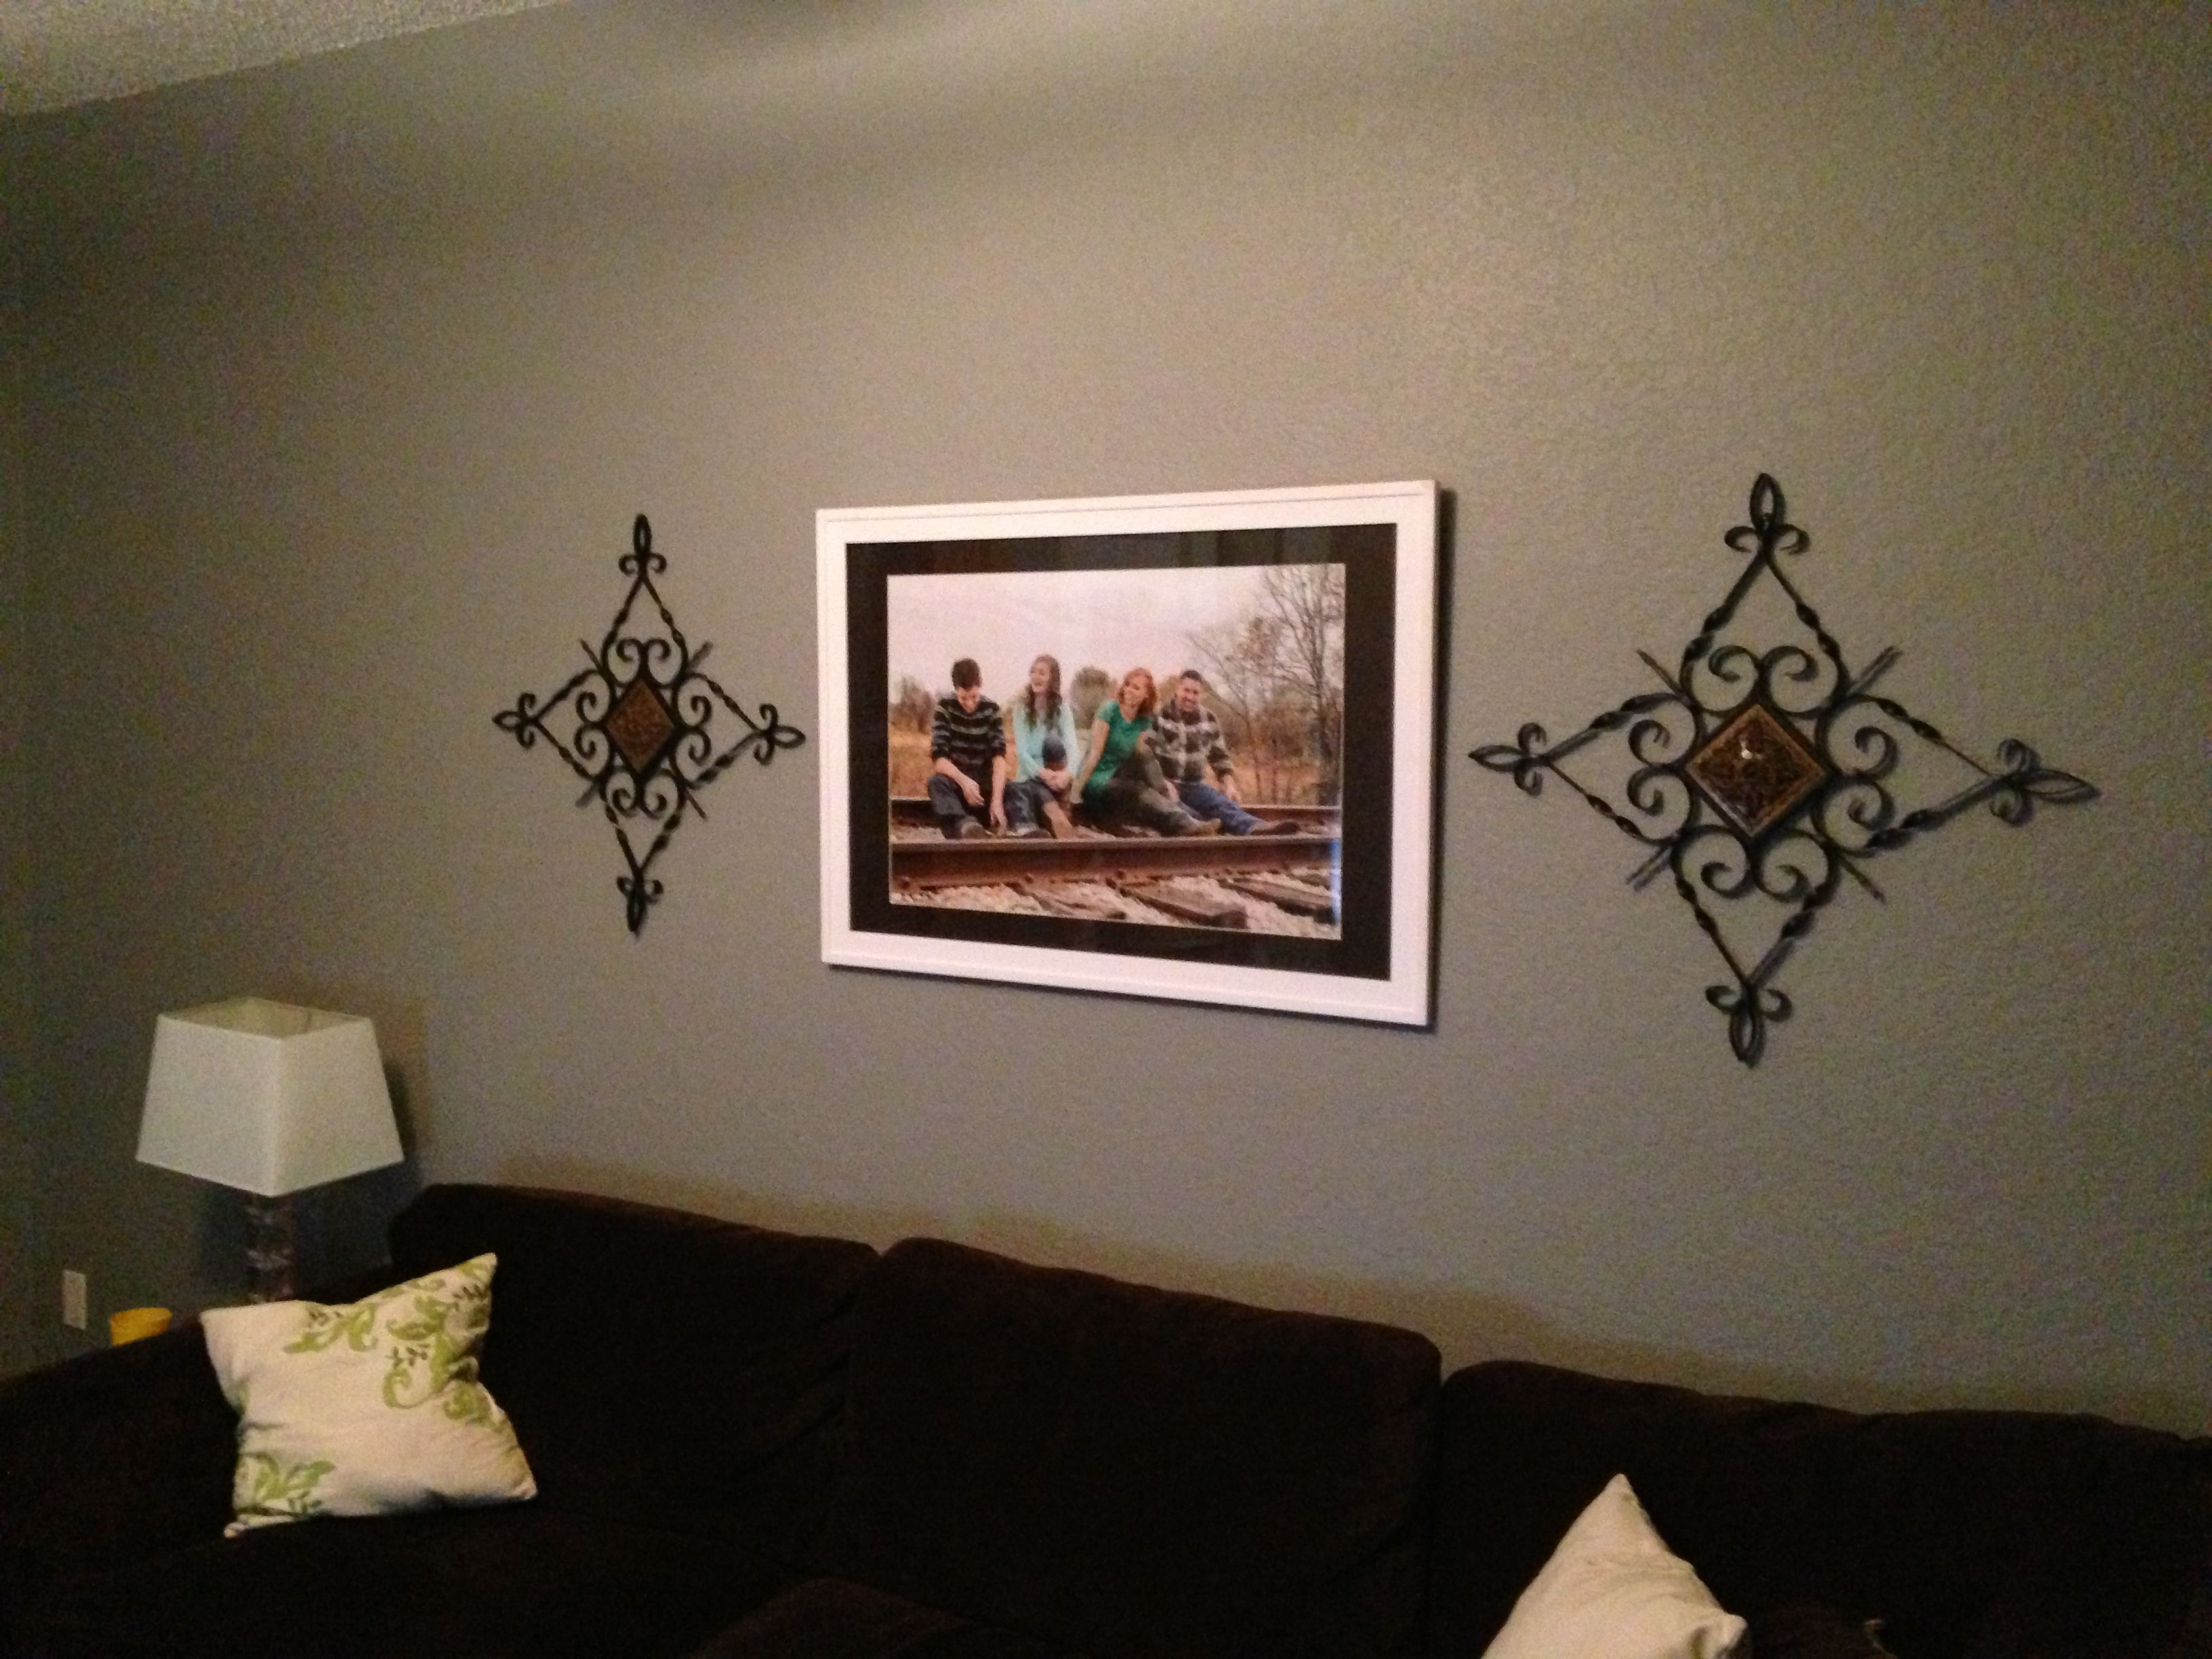 20x30 photo from walgreens in a 24x36 frame over couch